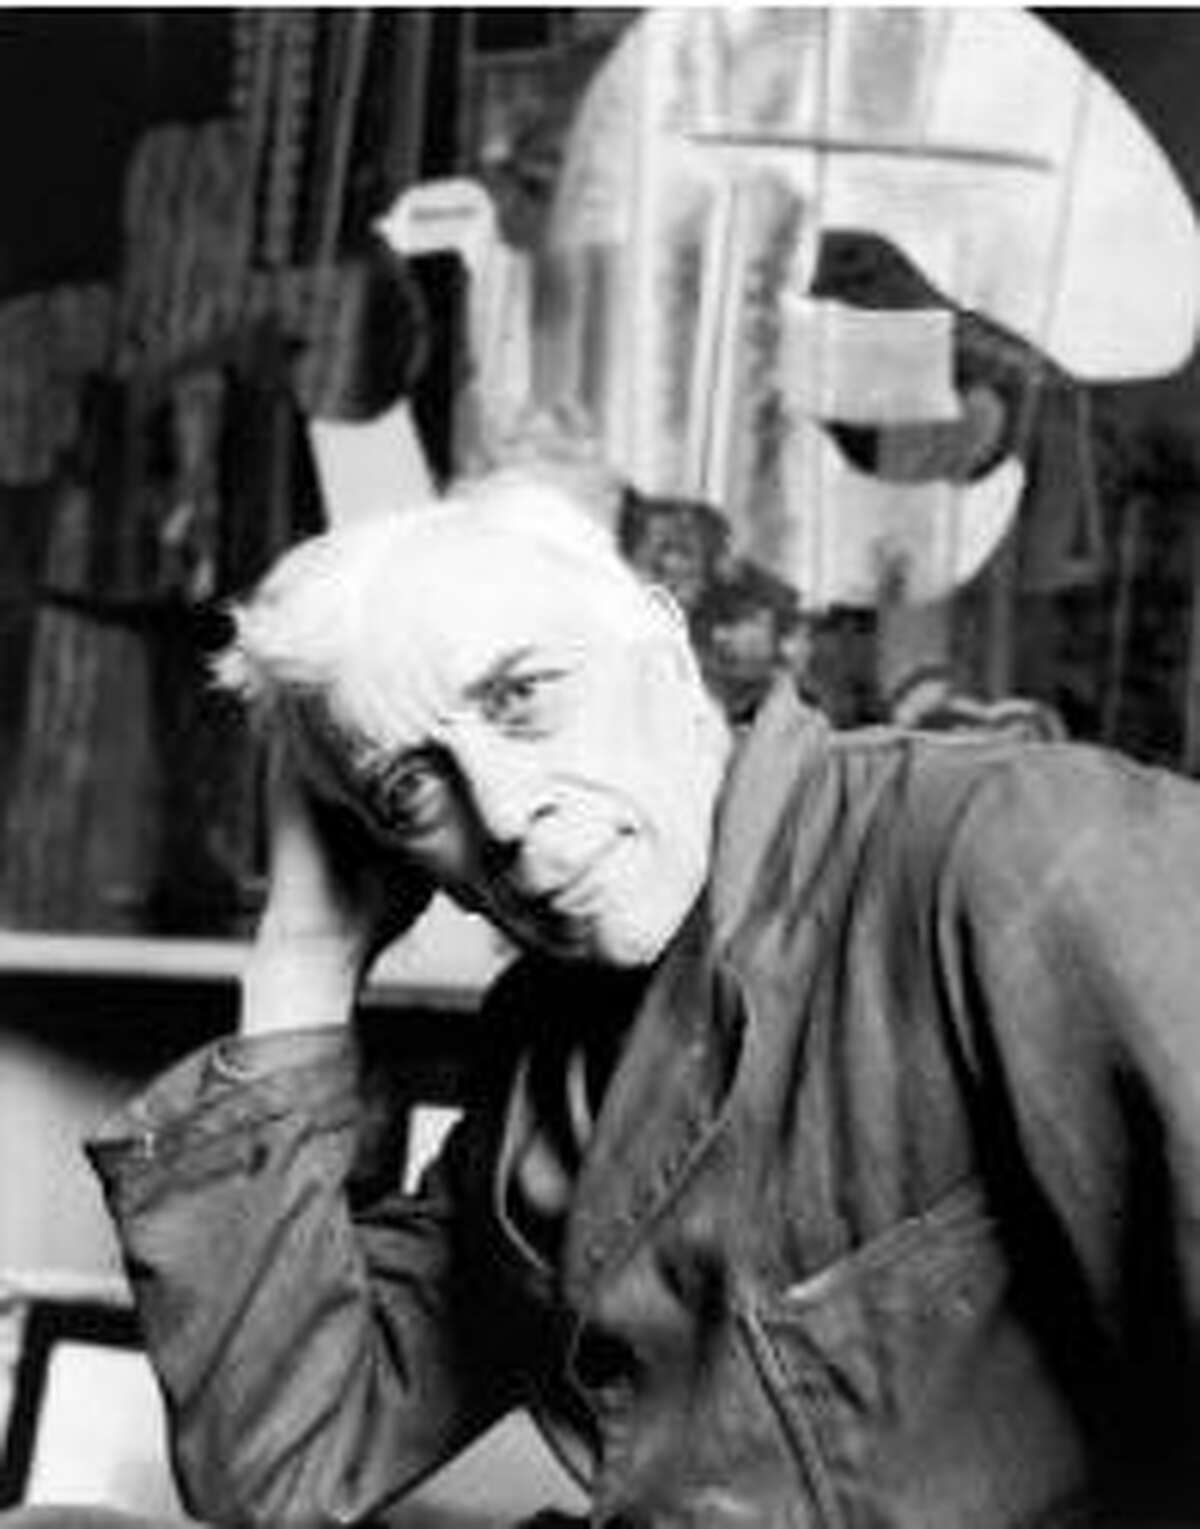 Artist Georges Braque developed Cubism with Pablo Picasso.